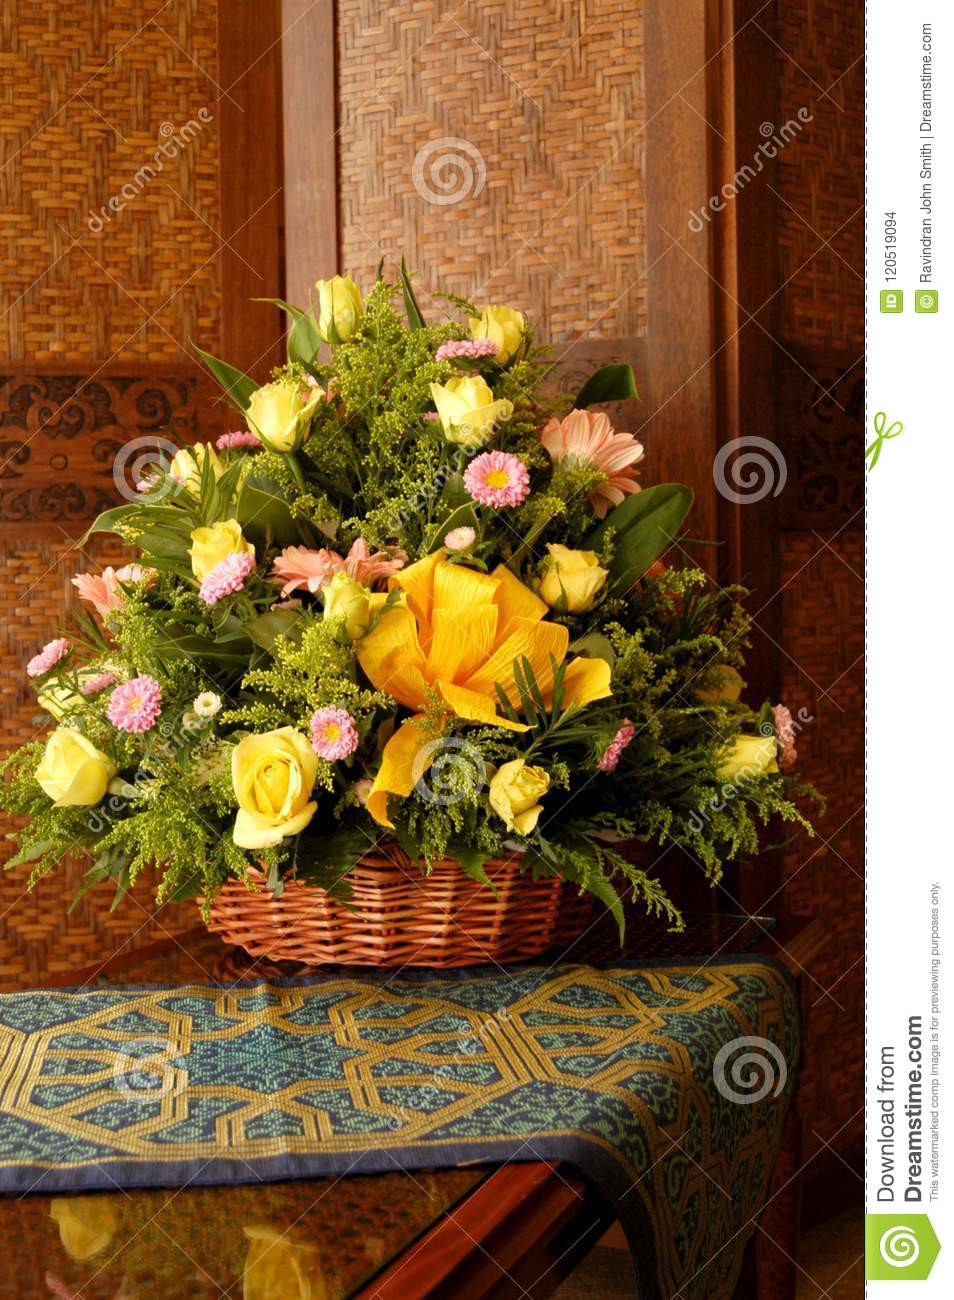 Flower bouquet stock photo image of flower decor creative 120519094 a flower bouquet is a collection of flowers in a creative arrangement flower bouquets can be arranged for the decor of homes or public buildings izmirmasajfo